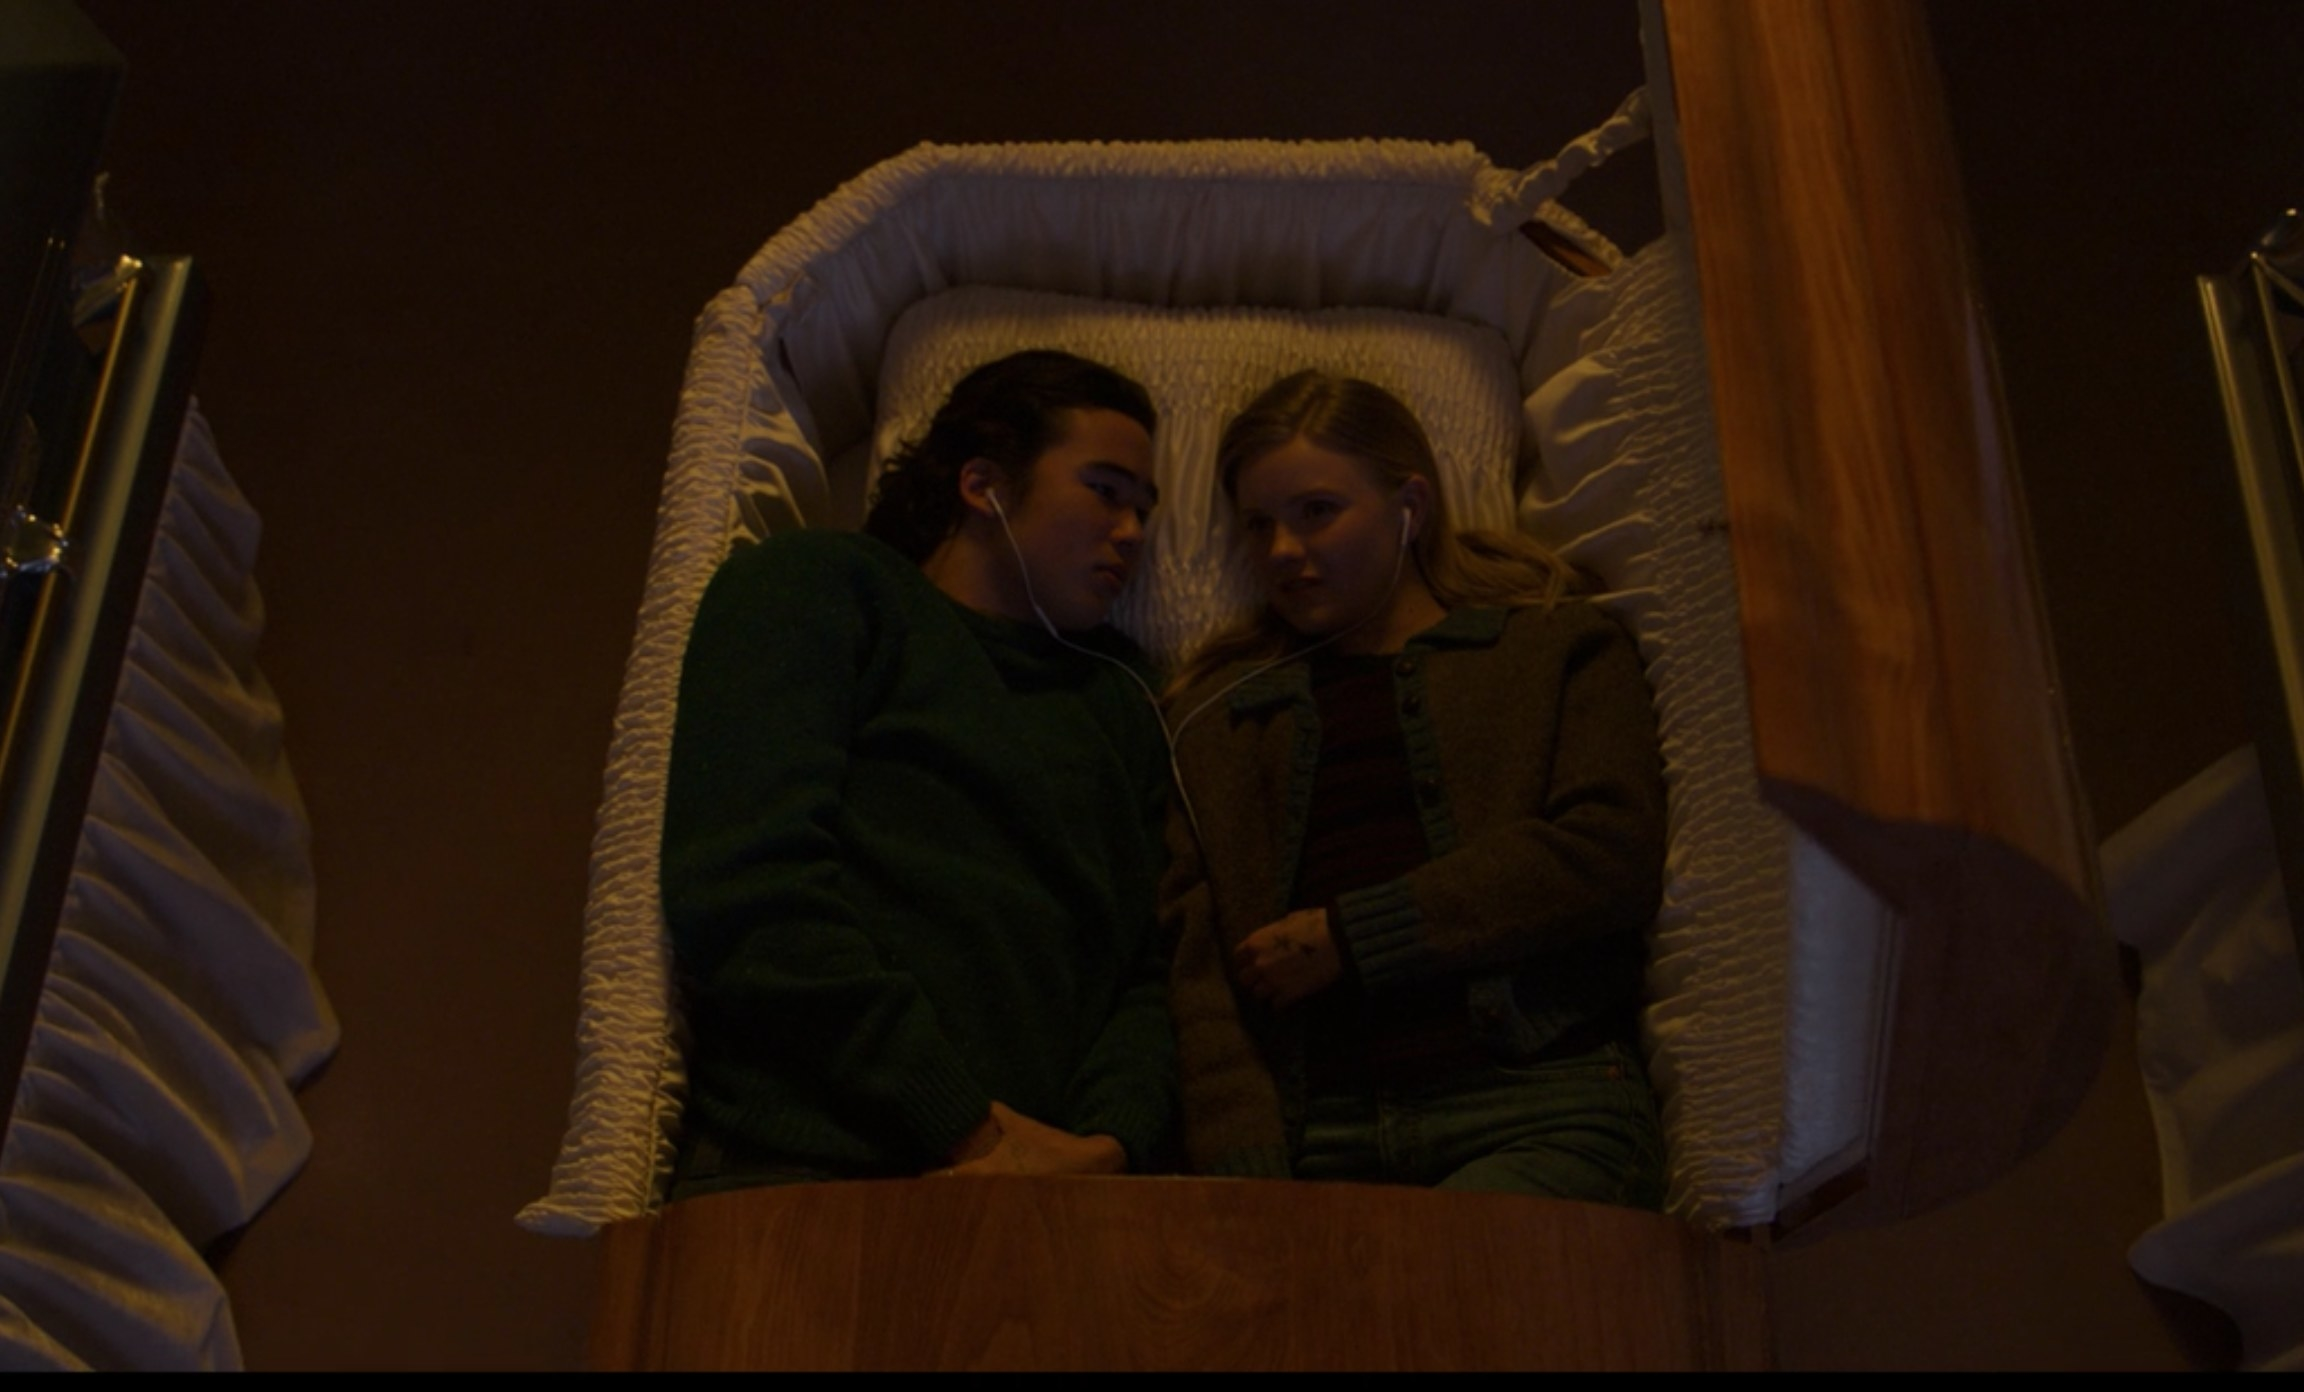 Seth and Viv lie in a coffin together